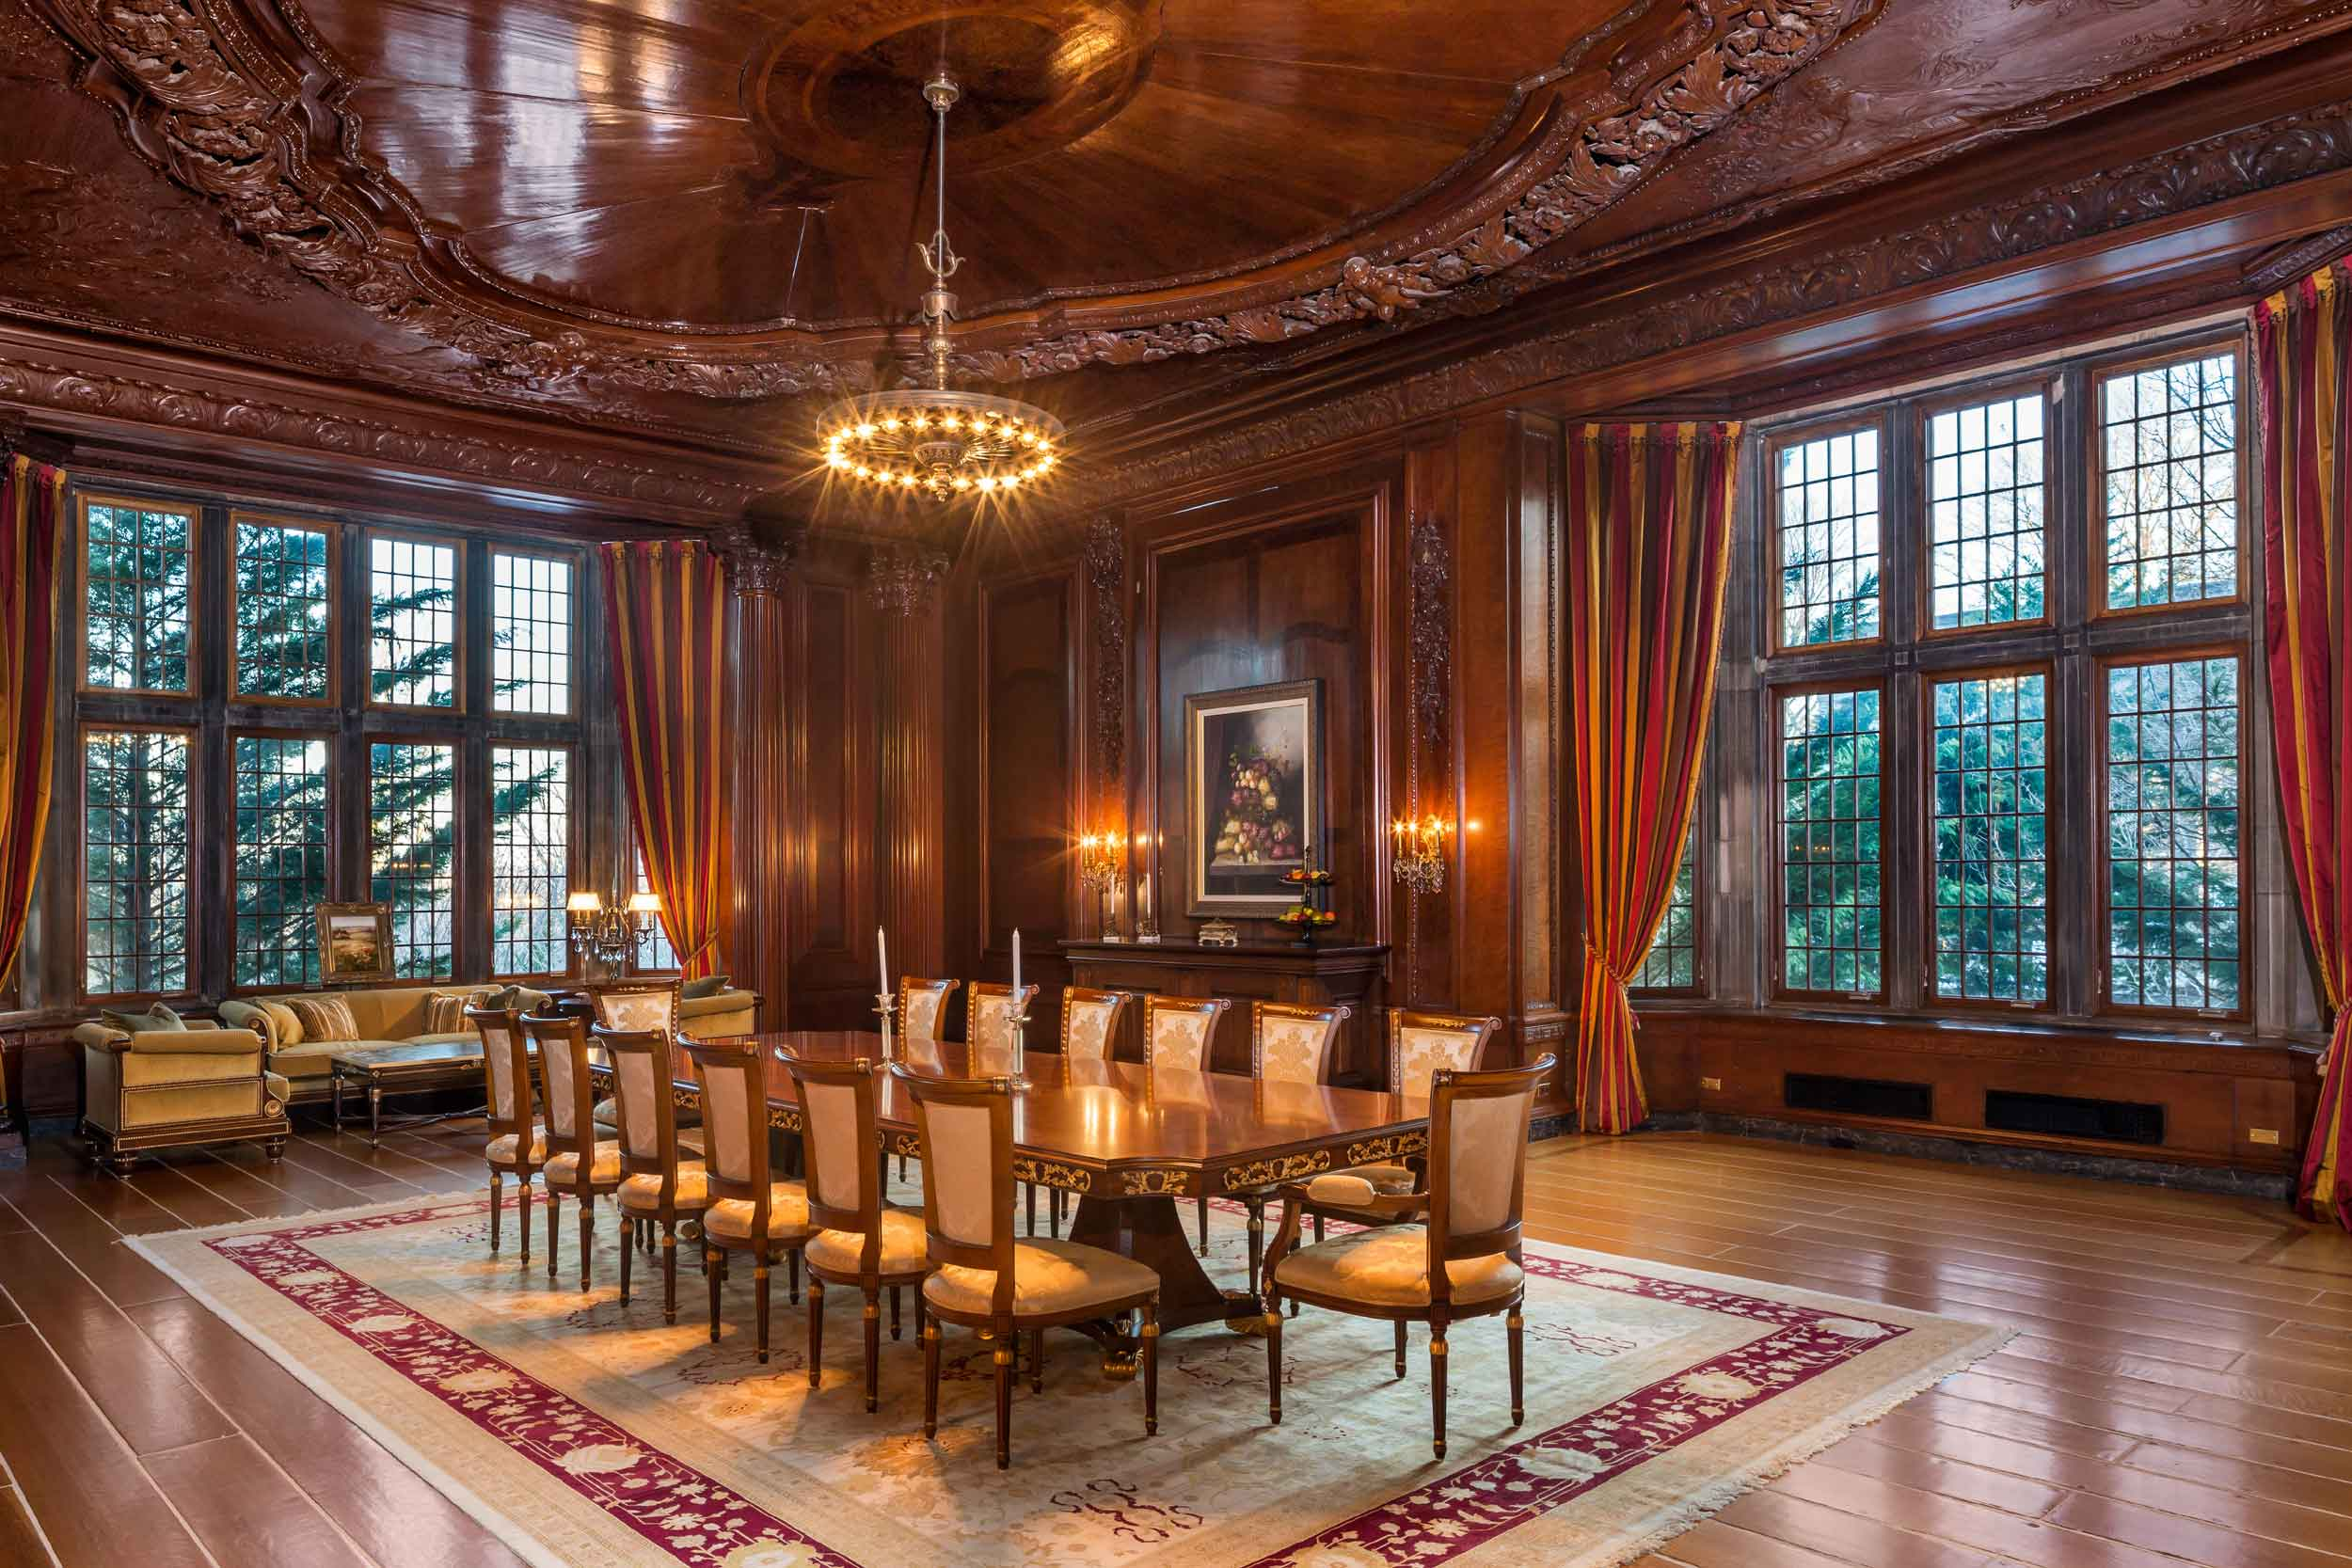 The Jacobean-style mansion was painstakingly restored over a seven-year period by an international team of artisans, artists, and designers. In the dining room, an exquisite coffered ceiling, a monumental limestone fireplace, and beautiful mullioned windows are examples of Darlington's Gilded Age splendor.